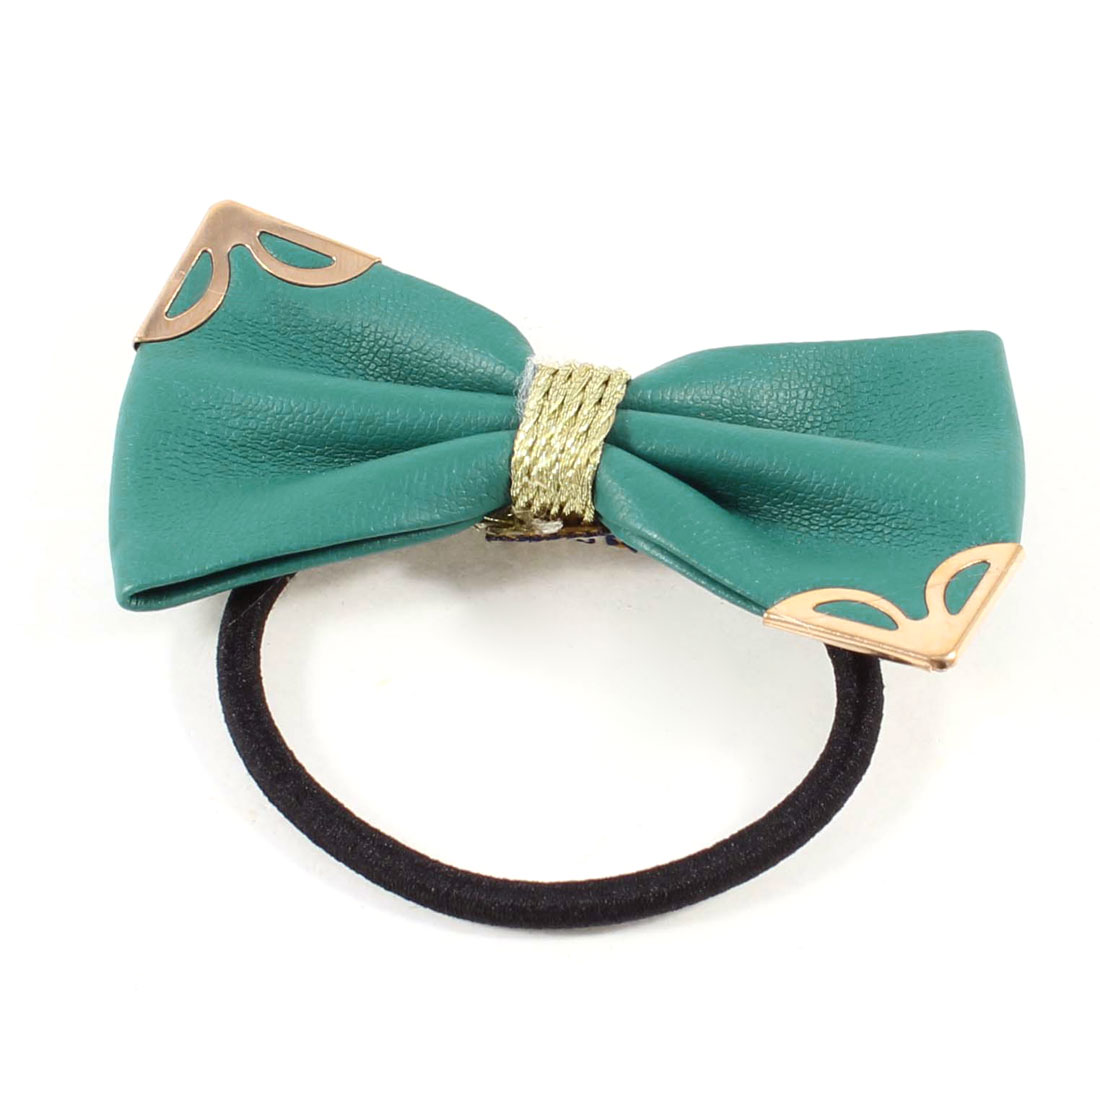 DIY Hairdo Dark Green Faux Leather Bowknot Decorated Hair Rubber Band Tie